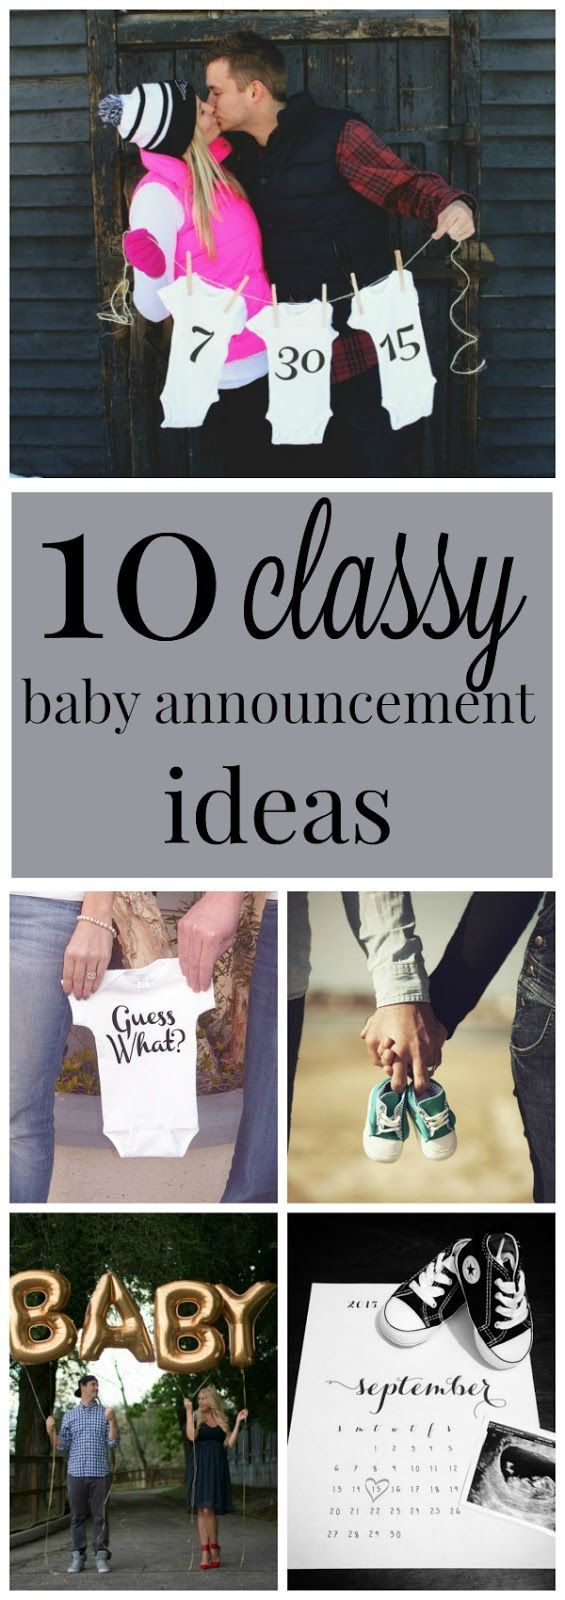 10 classy and creative pregnancy photo announcement ideas. Want to let everyone know you're expecting a baby? Here's some great inspiration for you!